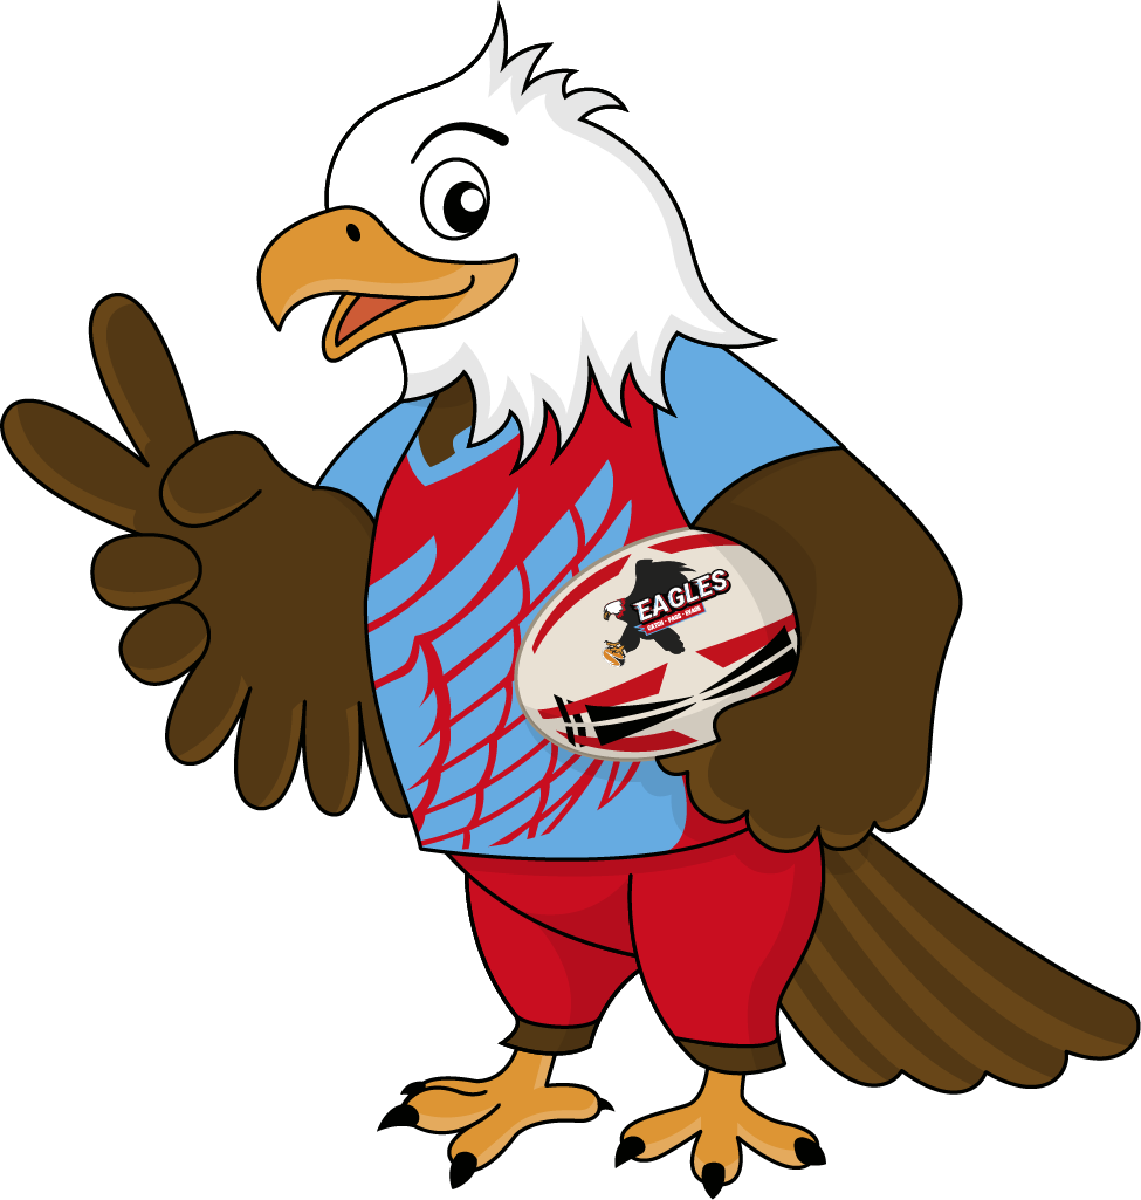 A new member decided to join the Rugby Eagles Luxembourg